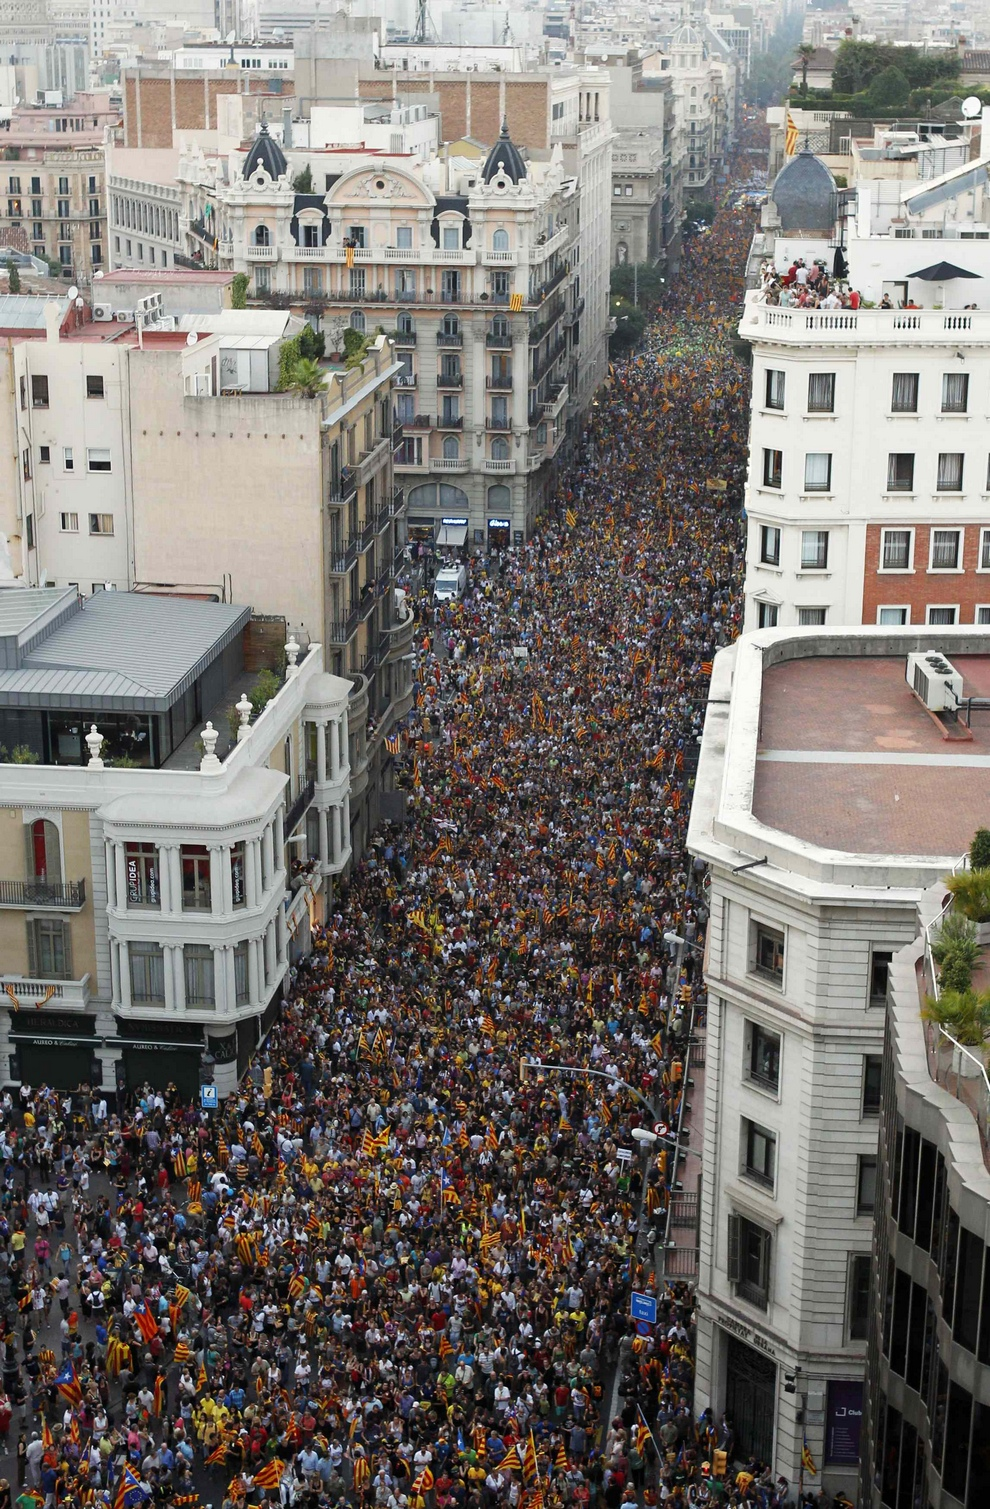 Marchers demonstrate during Catalan National Day in Barcelona